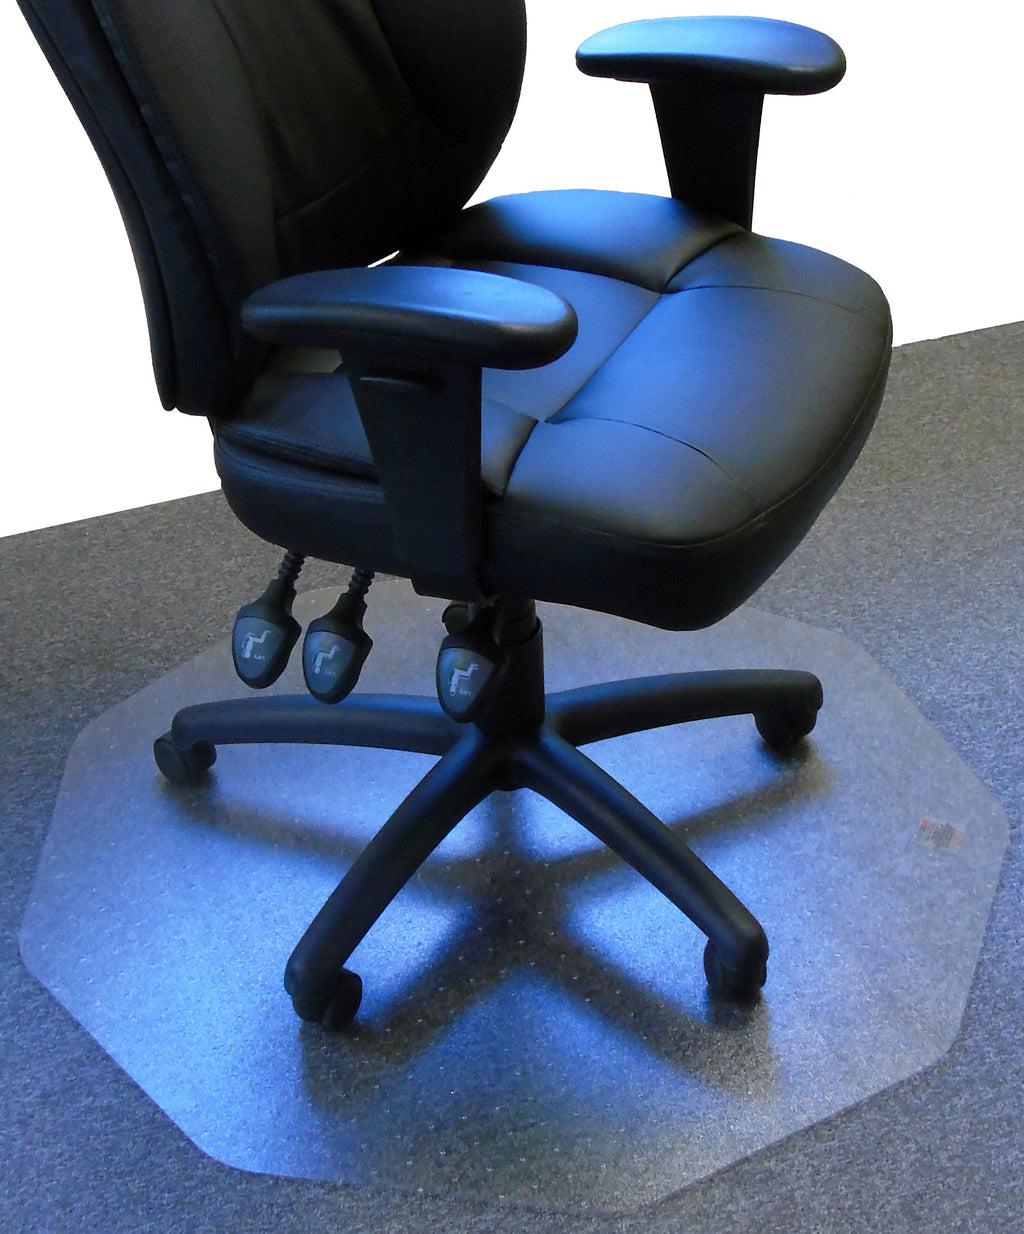 Cleartex 9Mat Ultimat Polycarbonate Clear Chair mat for Hard Floor, Floor Mats, FloorTexLLC, - ReeceFurniture.com - Free Local Pick Ups: Frankenmuth, MI, Indianapolis, IN, Chicago Ridge, IL, and Detroit, MI